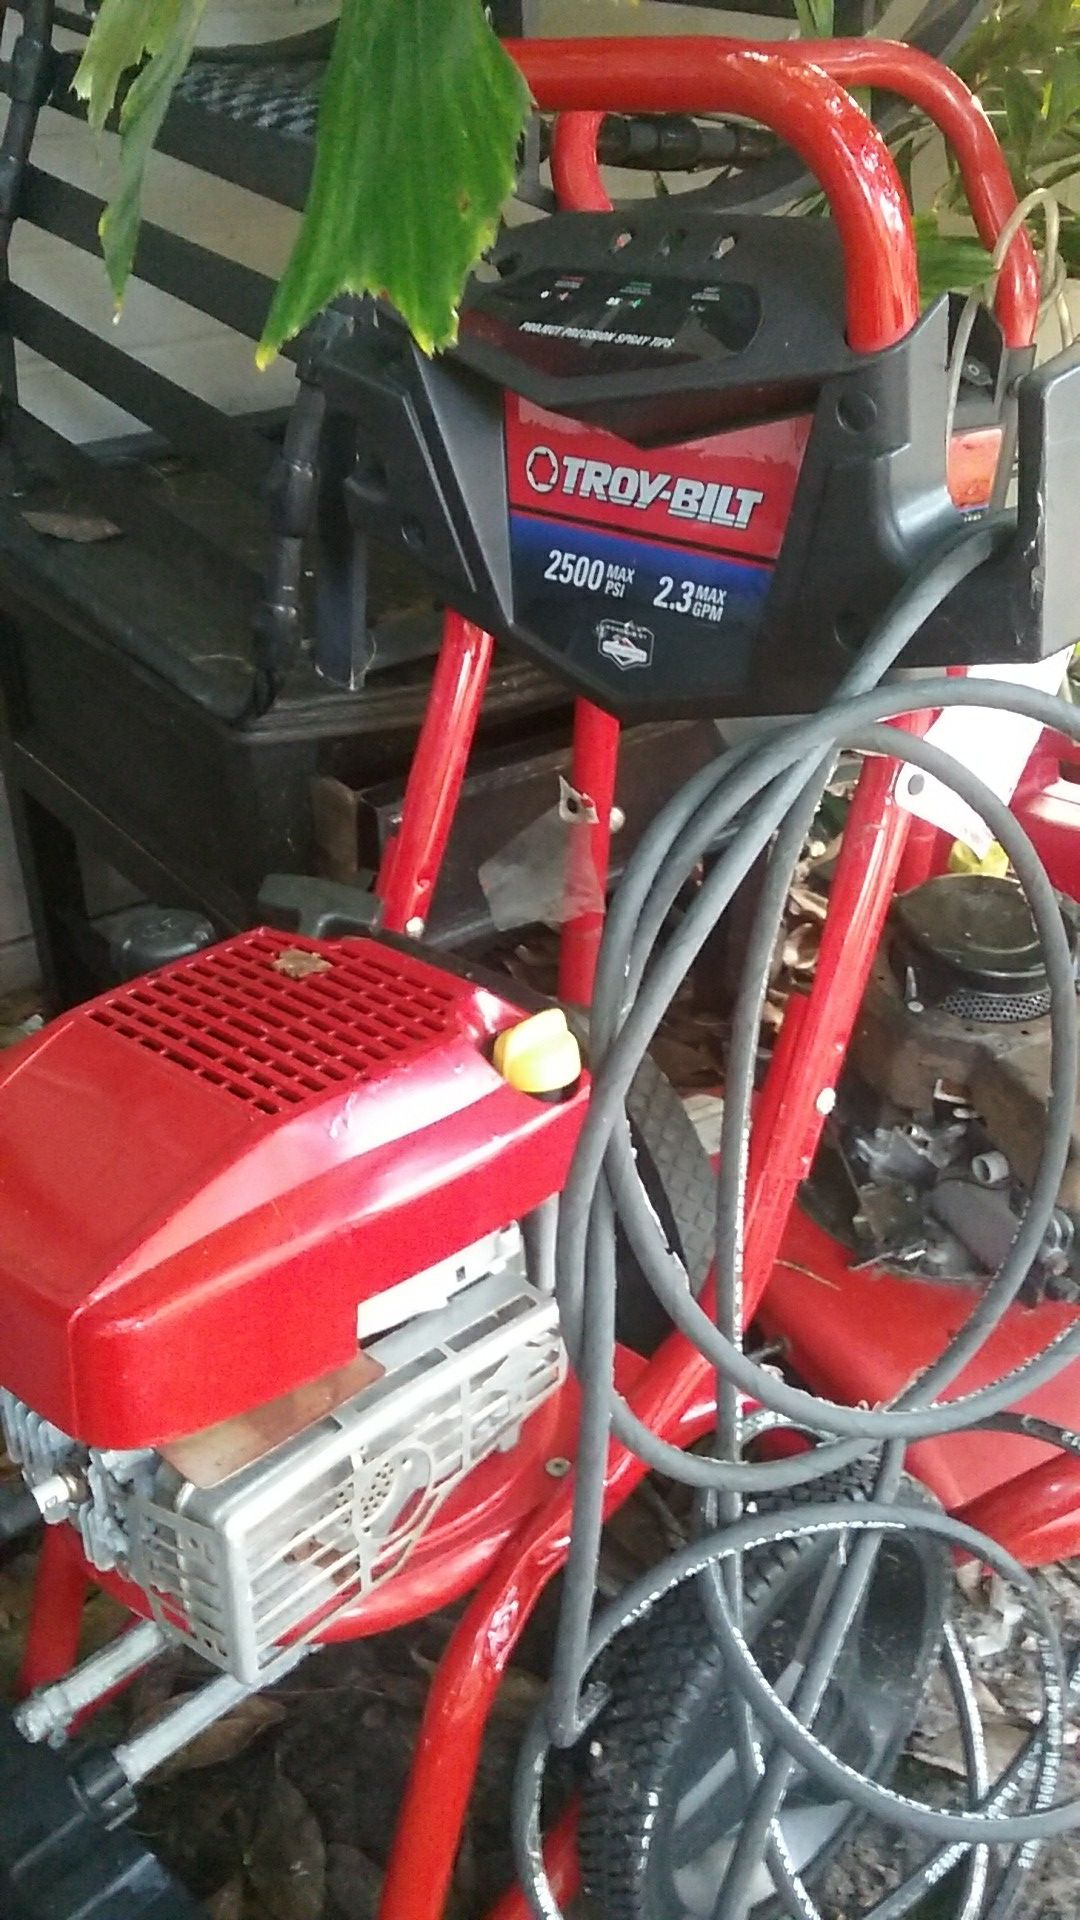 Troy-Bilt 2500 with hose and wand just like brand new